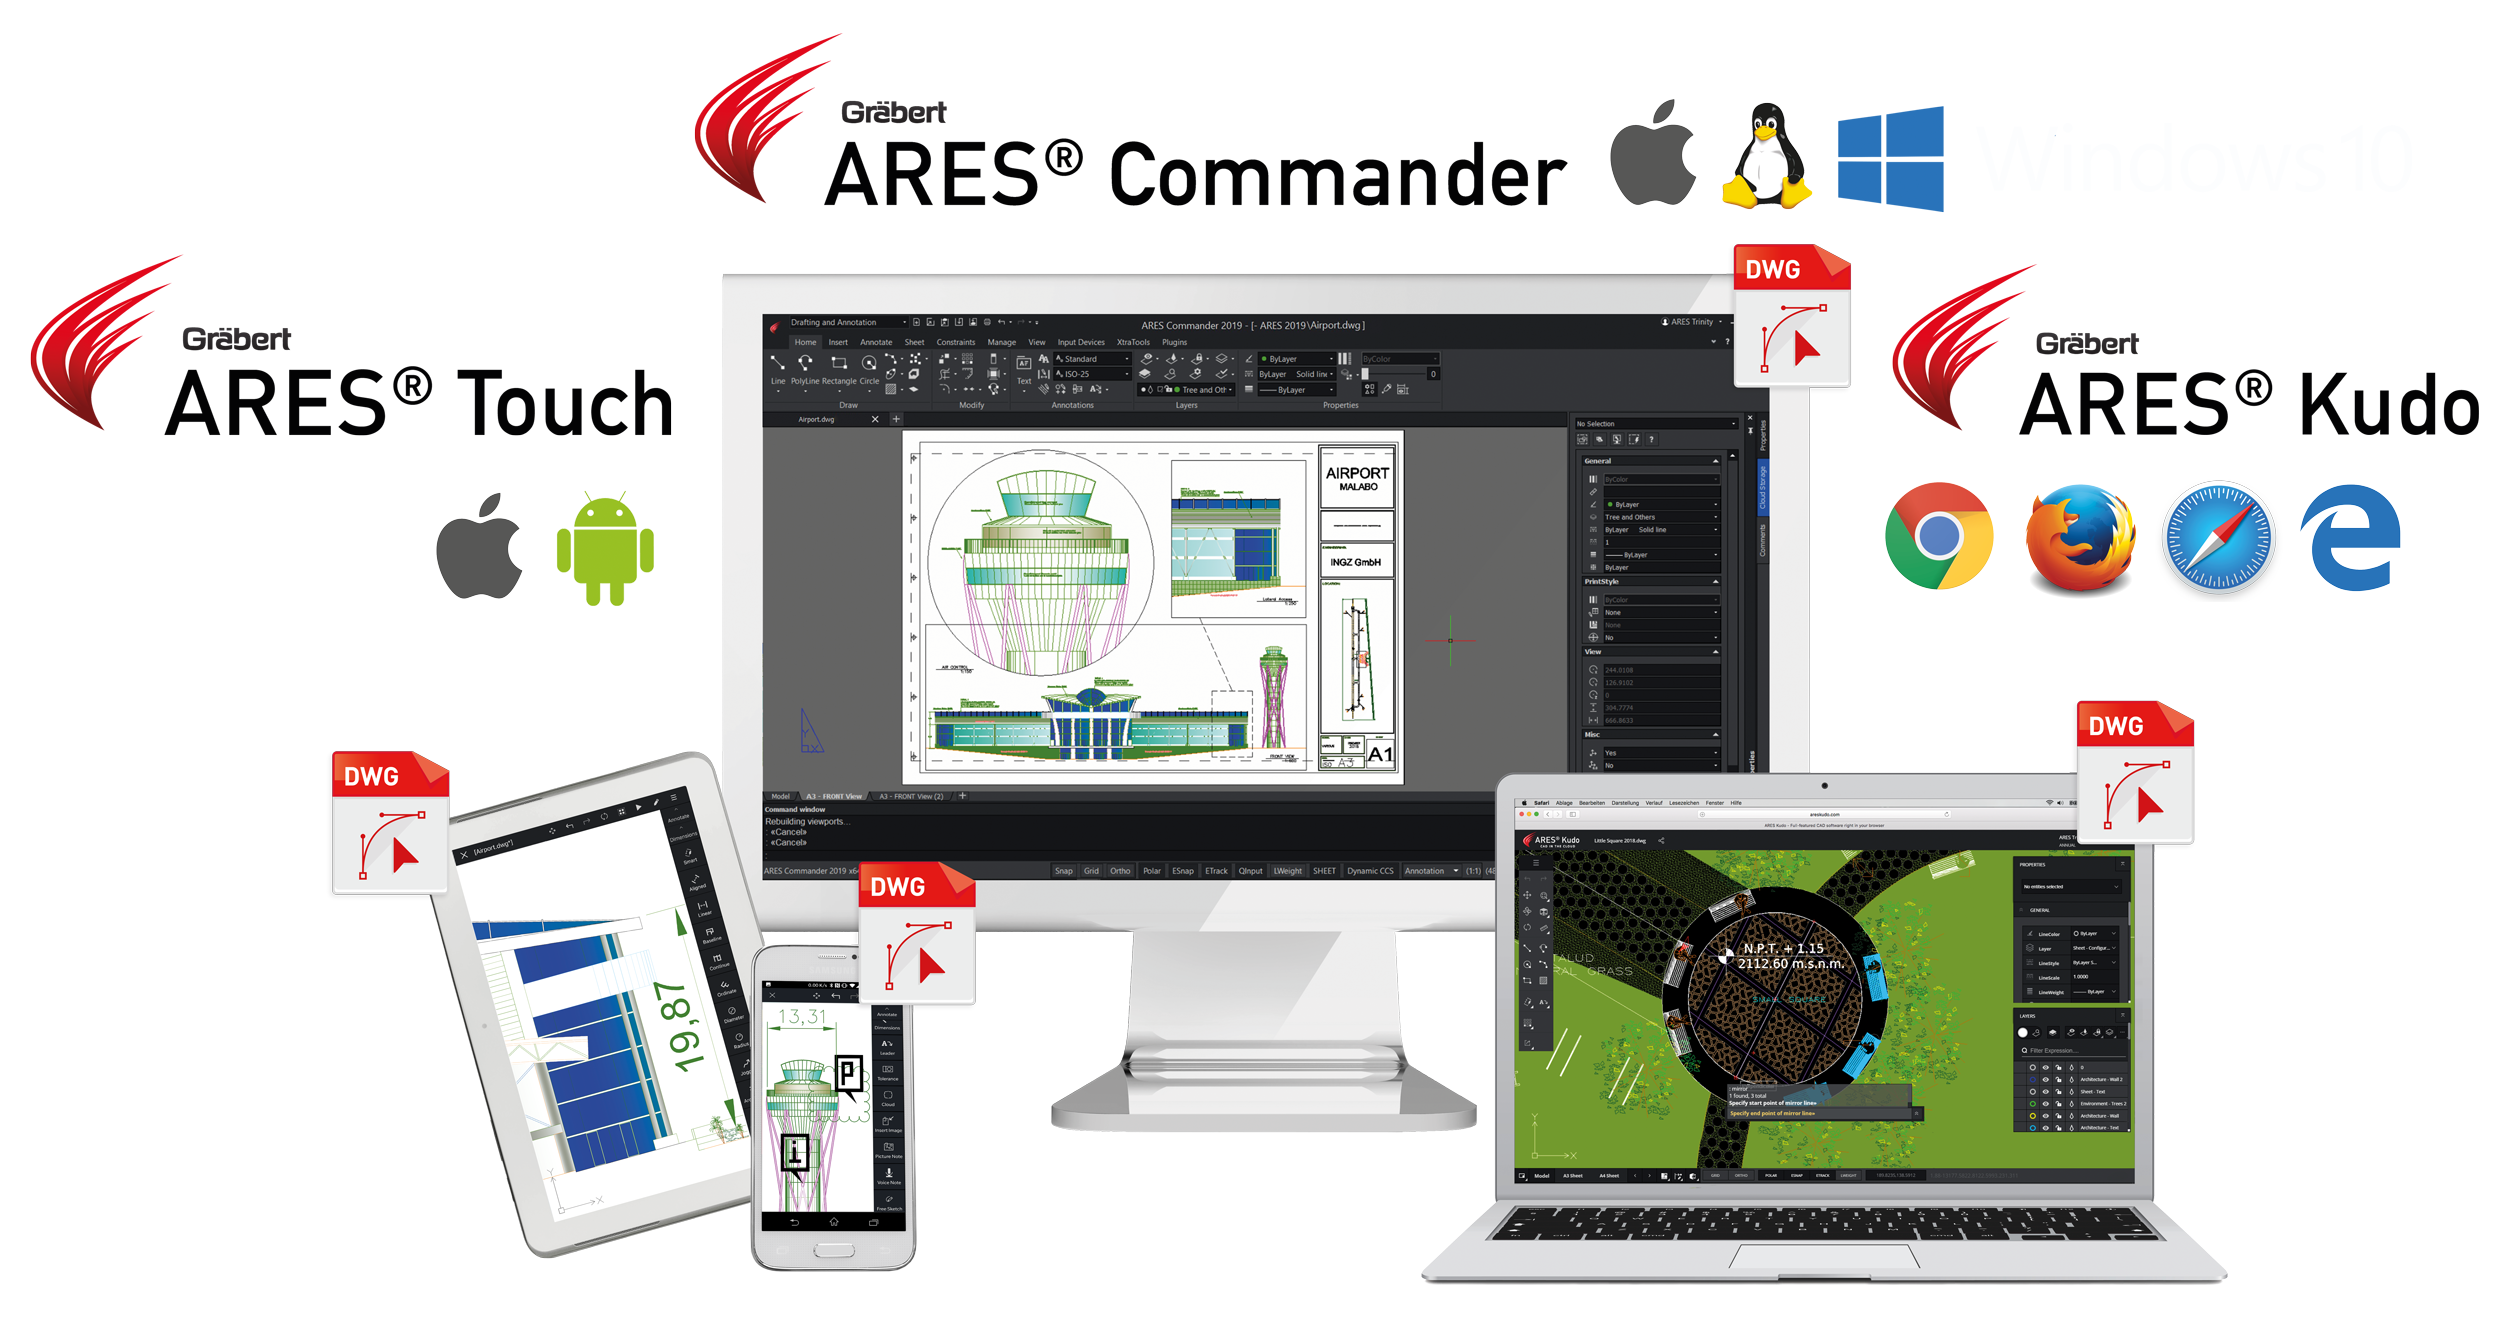 Ares Commander Demo - CAD anywhere on any device